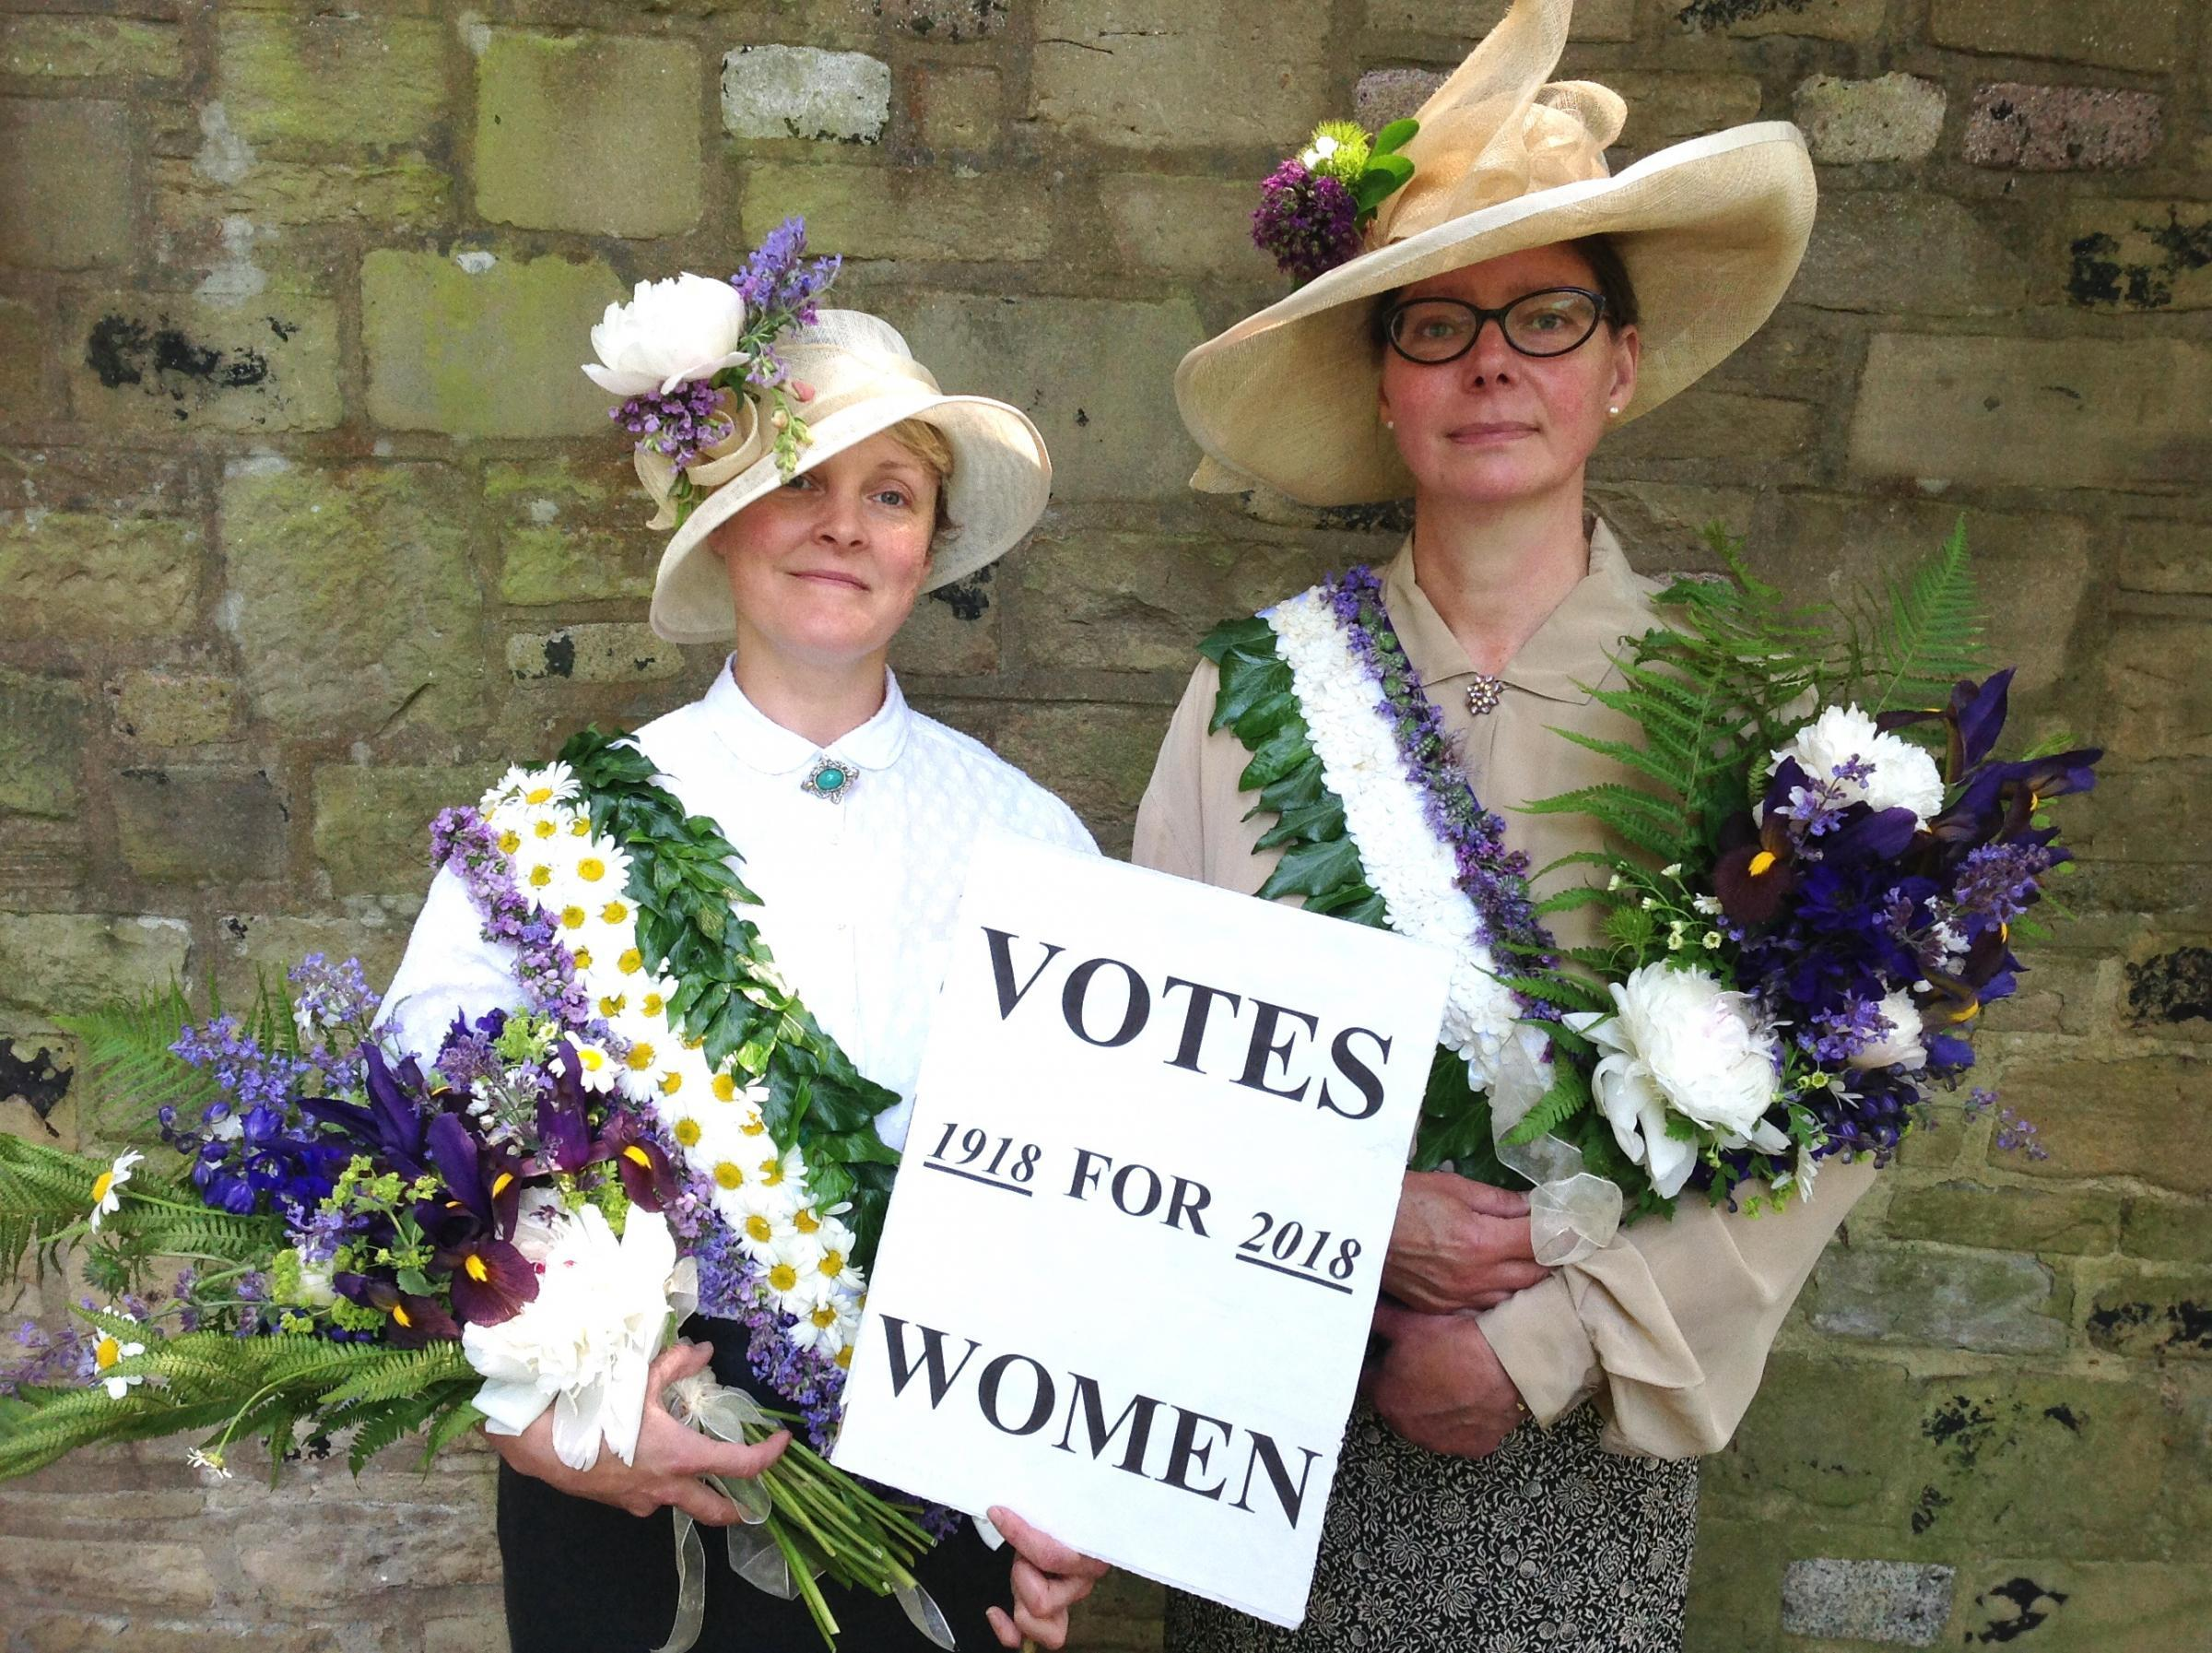 Jane Tucker (left) and Susanne Loweth with their floral tributes to the Suffragettes who achieved the first votes for women 100 years ago this year